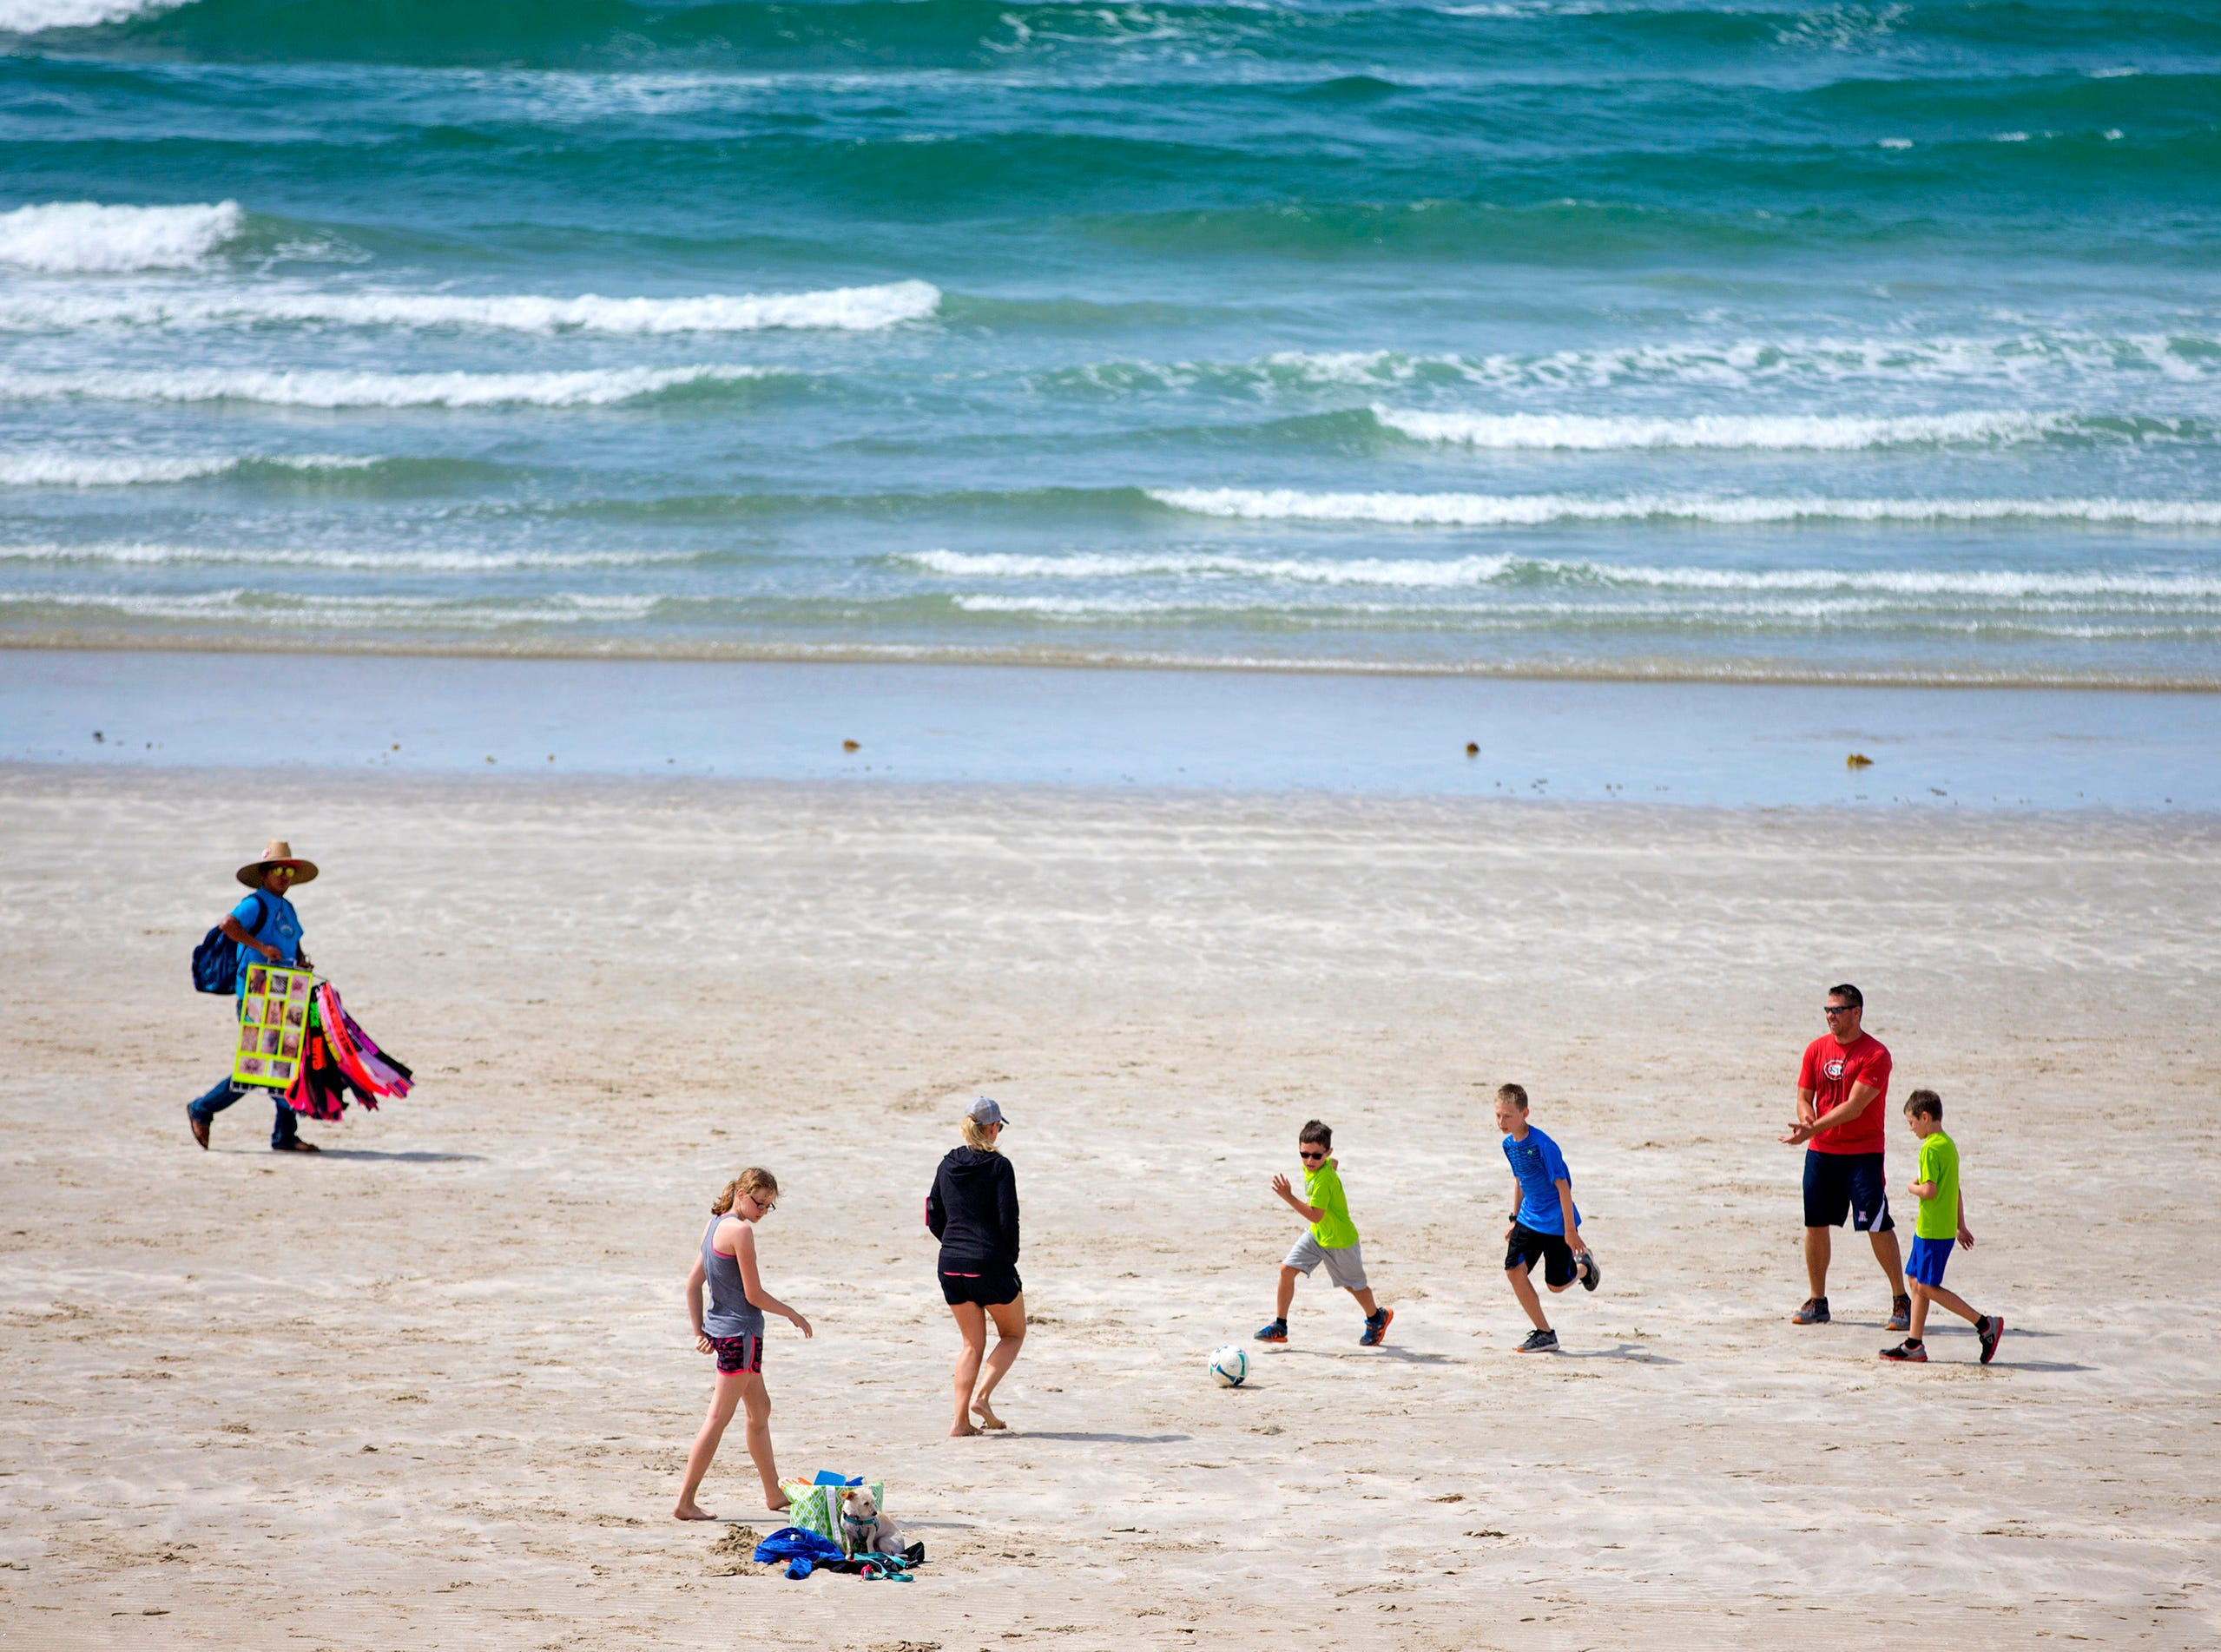 Wide and long beaches and a low tide make for a great soccer game on Sandy Beach in Puerto Penasco, Mexico.